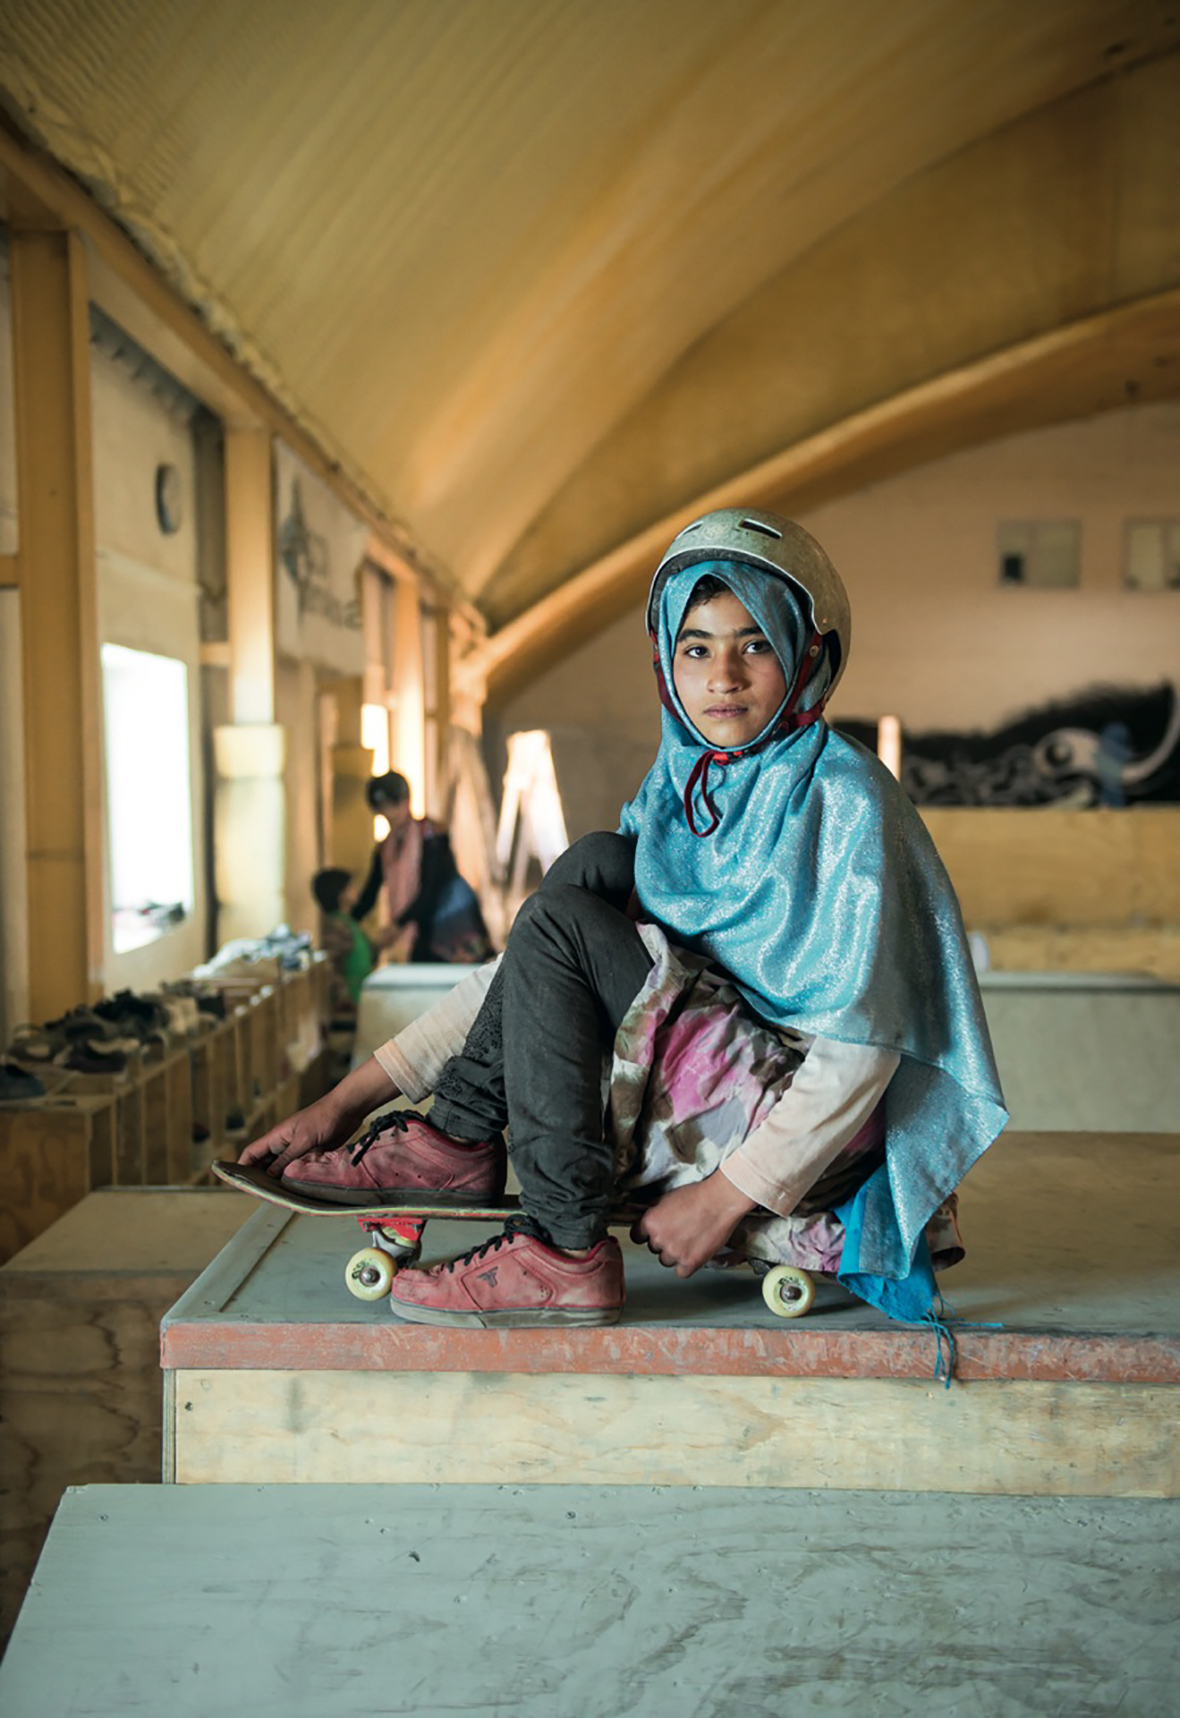 The Skate Girls of Kabul